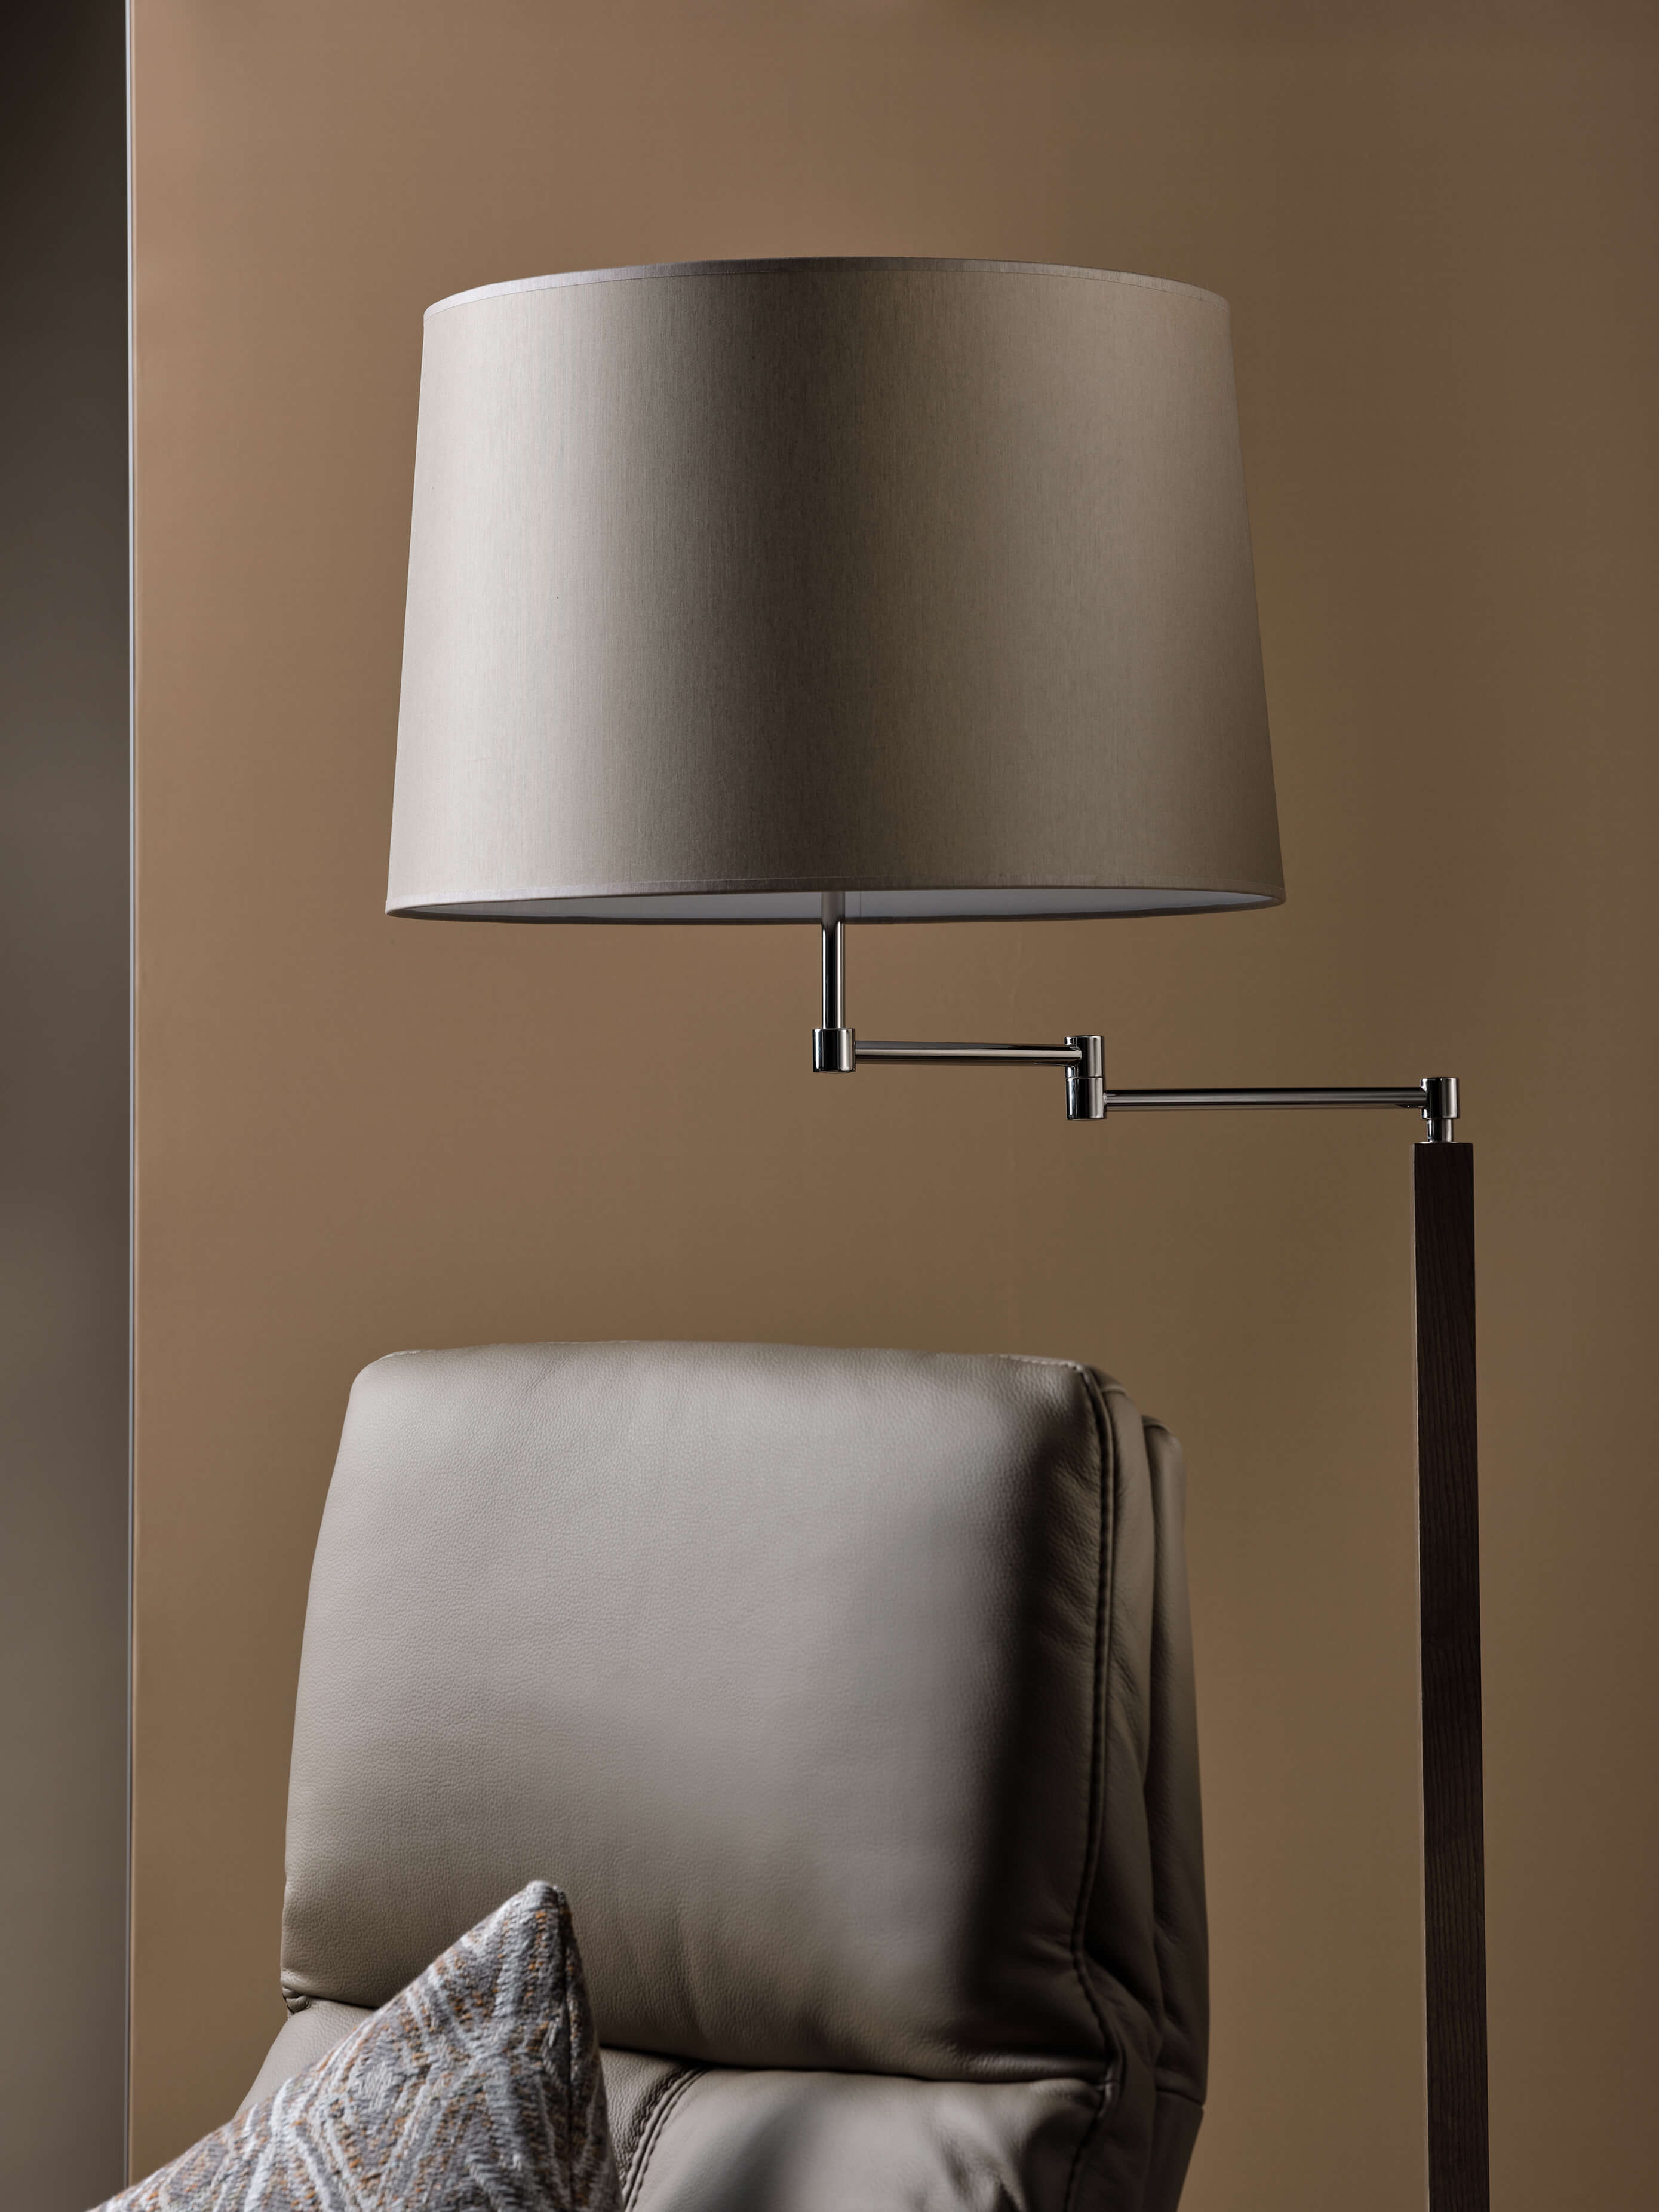 Lampadaire Liseuse, Living Rom